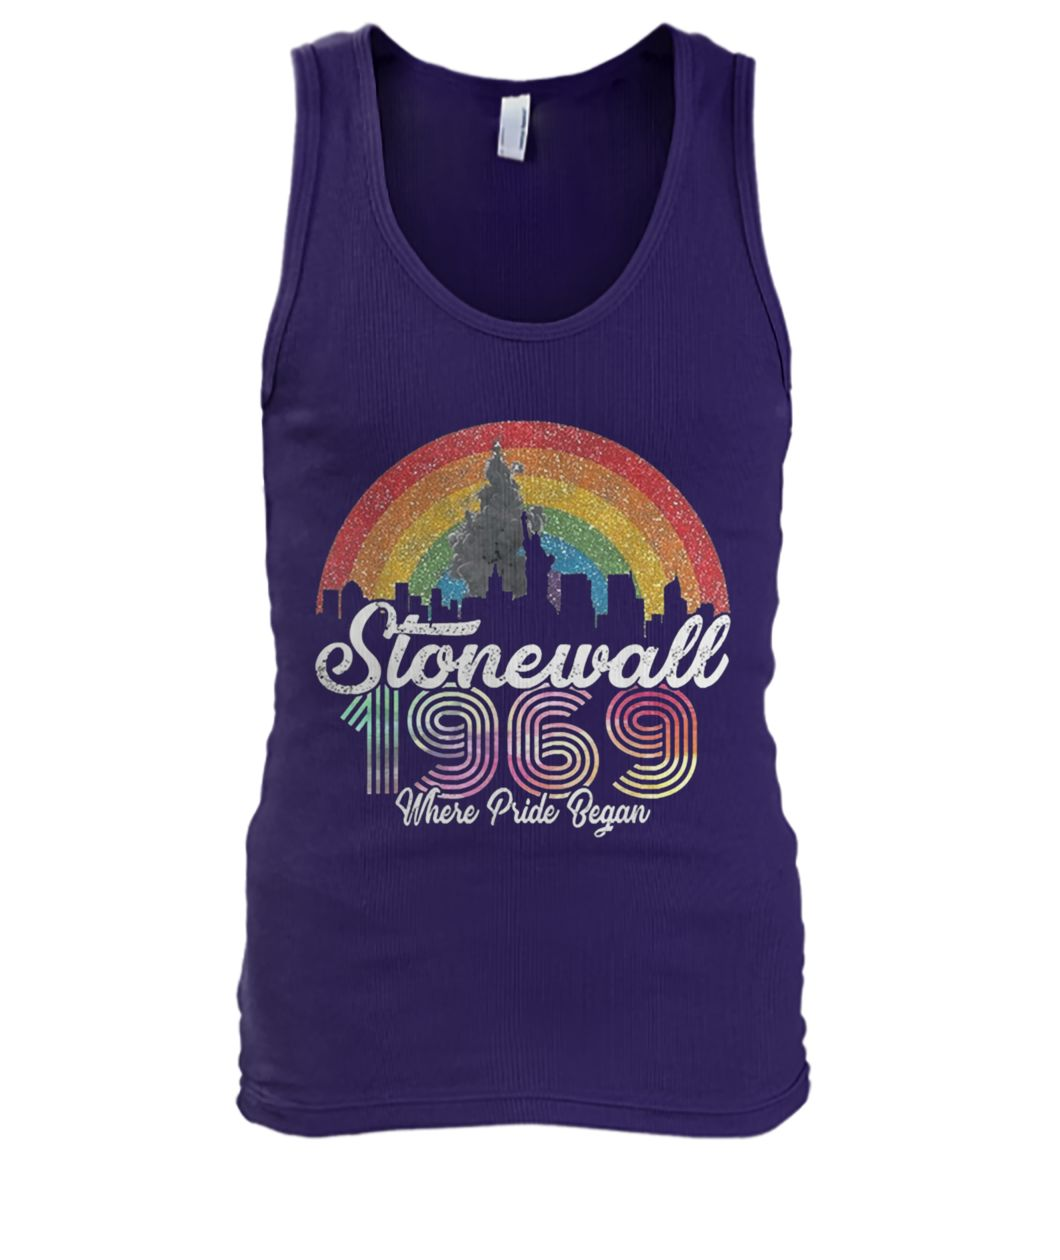 LGBT pride stonewall 1969 where pride began men's tank top